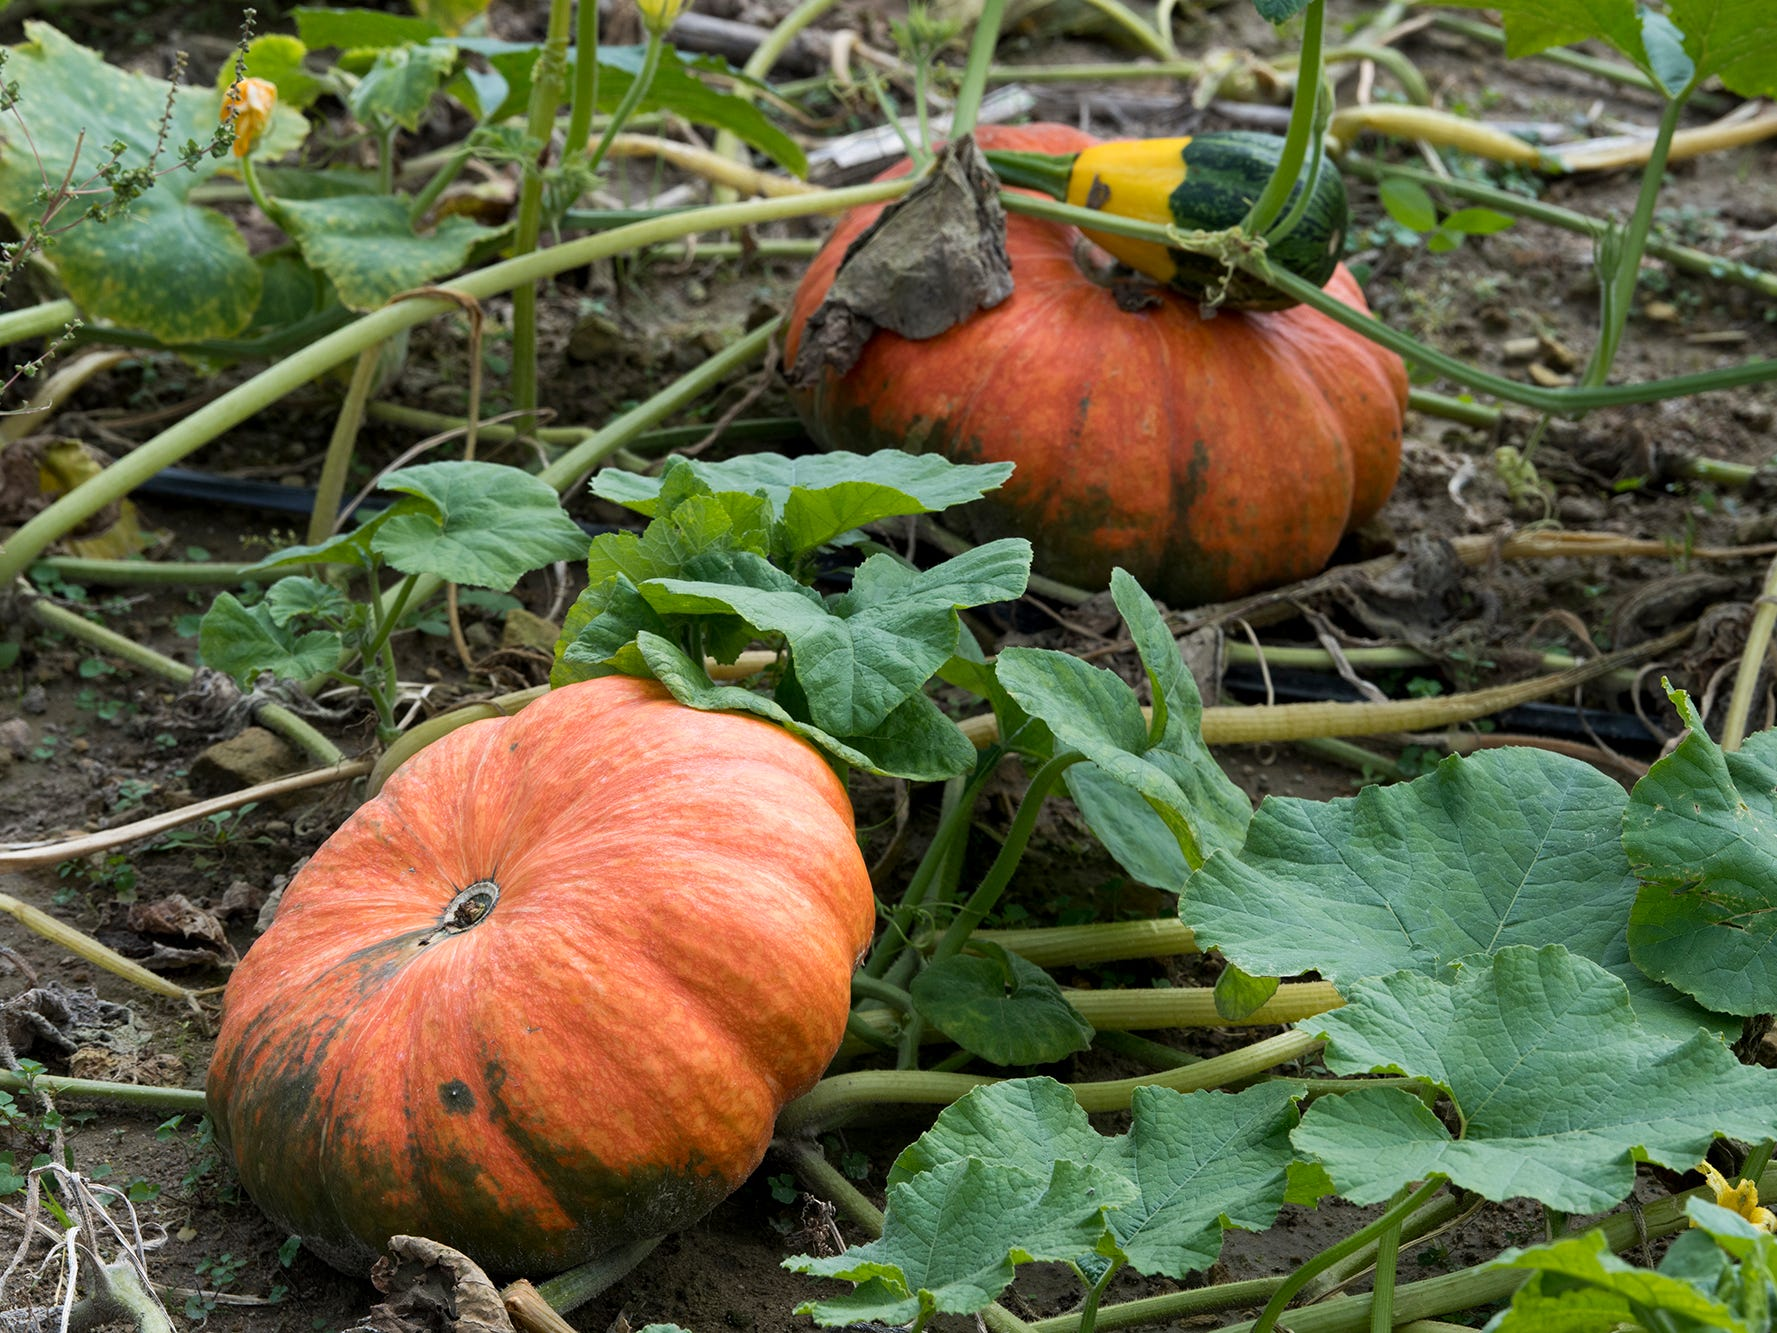 Pumpkins in the U-Pick field at Paulus Orchards in Monaghan Township Sunday September 30, 2018.